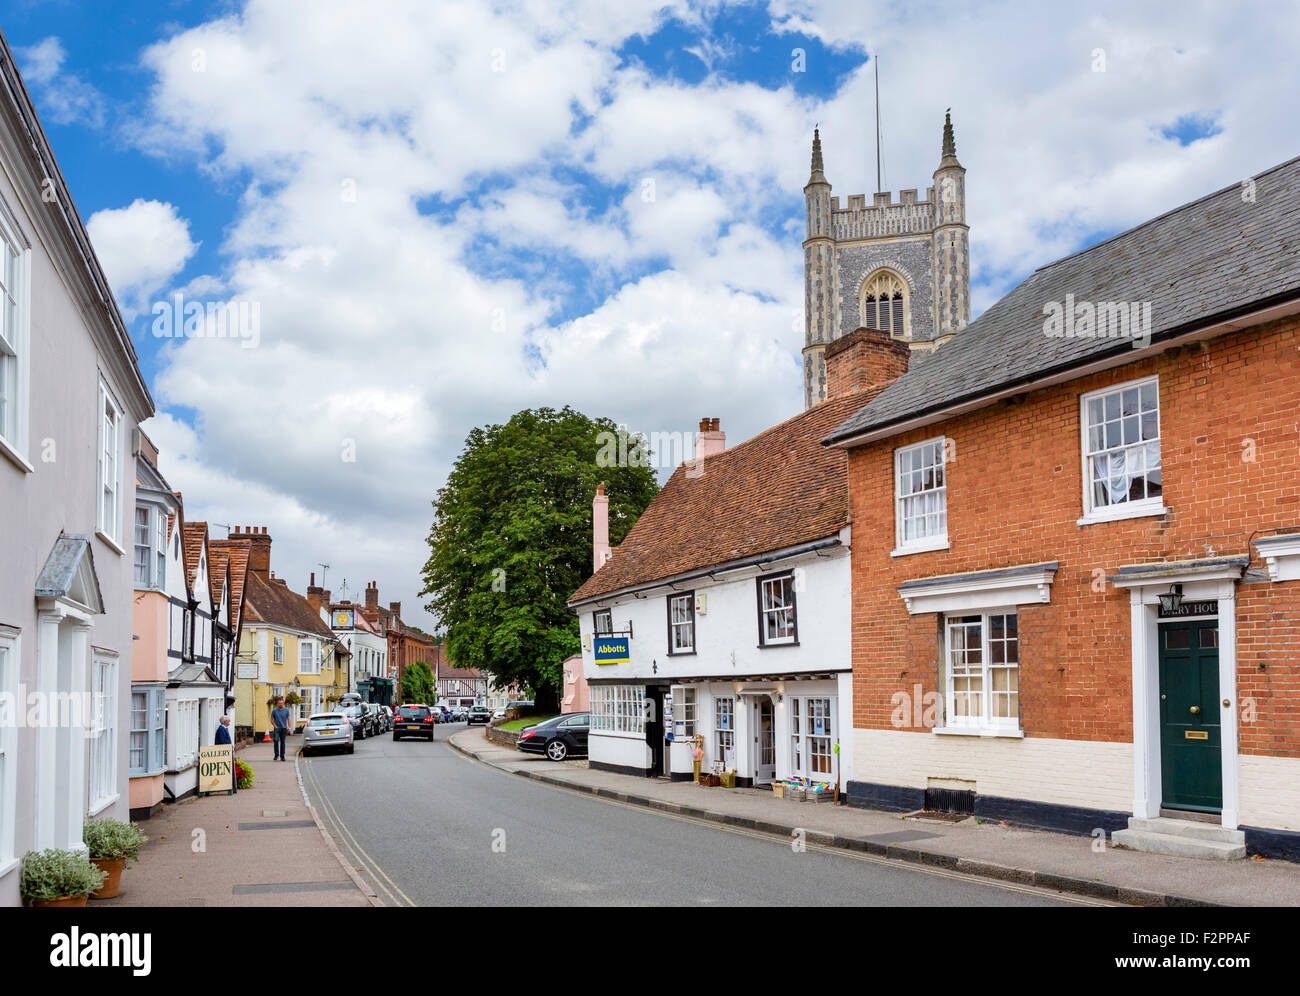 The High Street in Dedham, 'Constable Country', Essex, England, UK - Stock Image